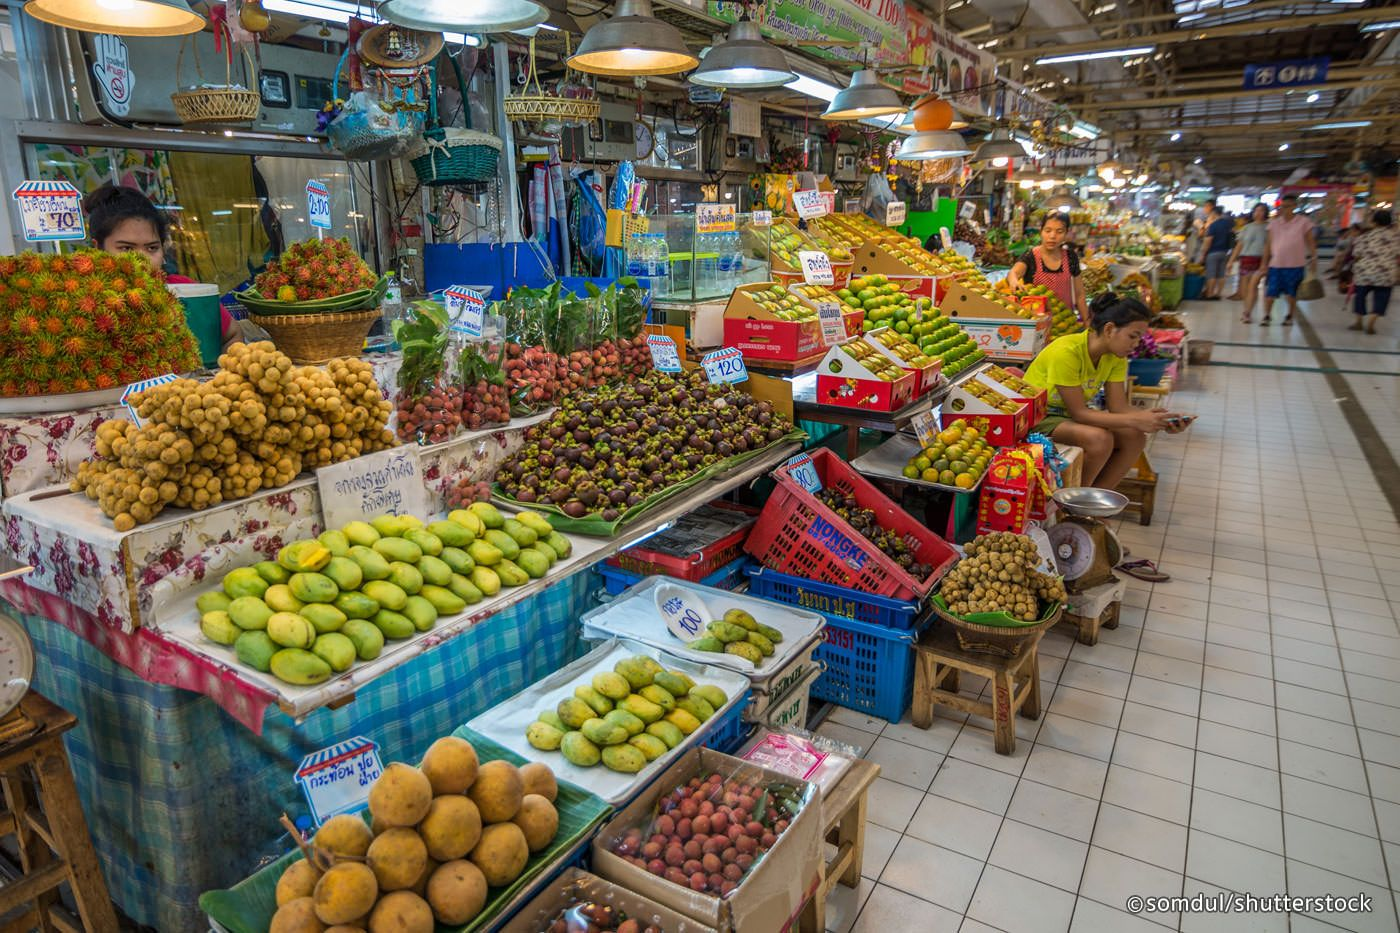 Ranked the 4th best fresh market in the world by a famous